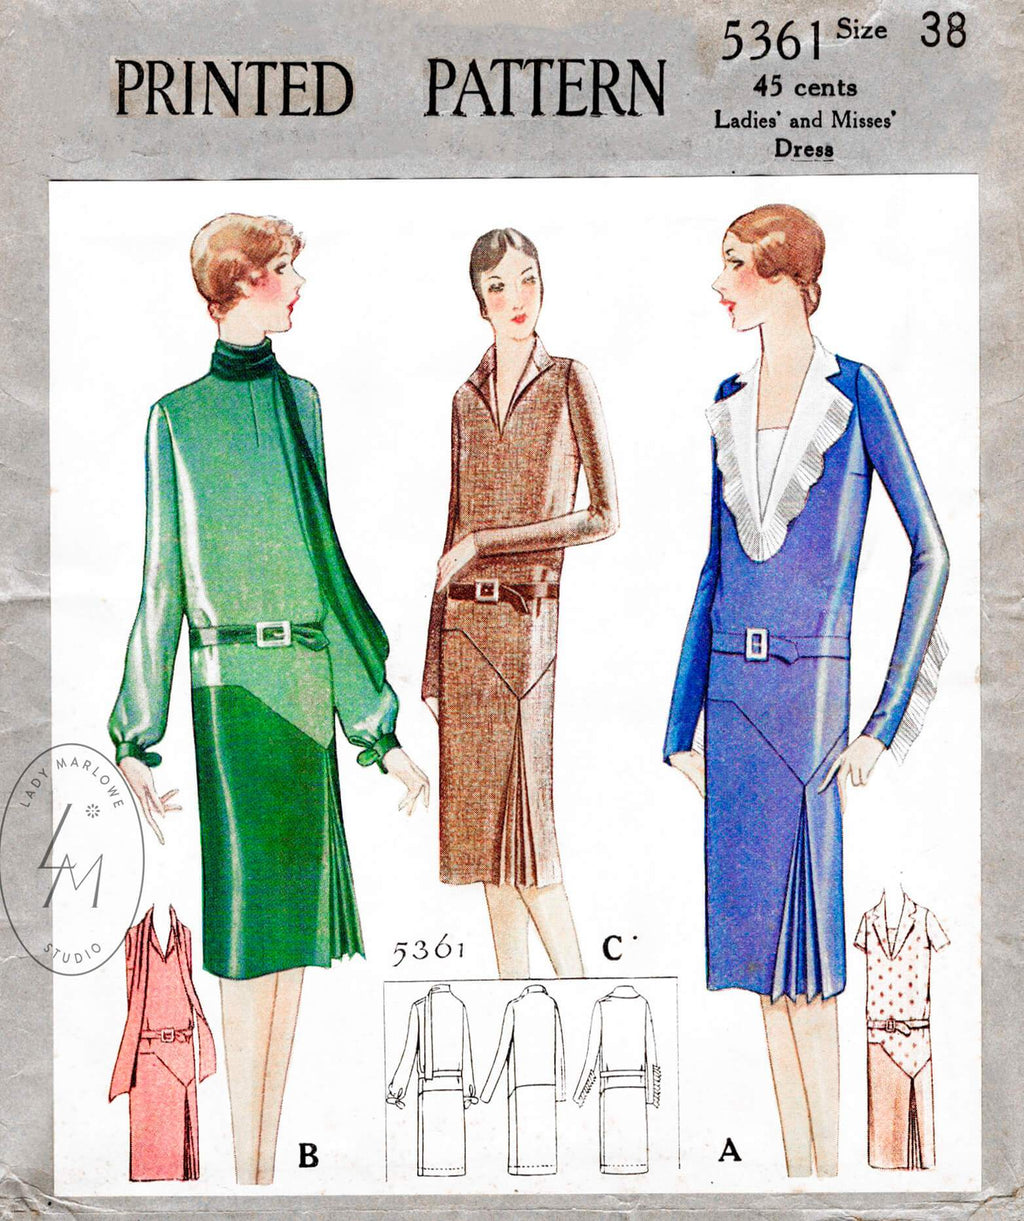 McCall 5361 1920s 1928 scarf collar art deco vintage dress sewing pattern reproduction